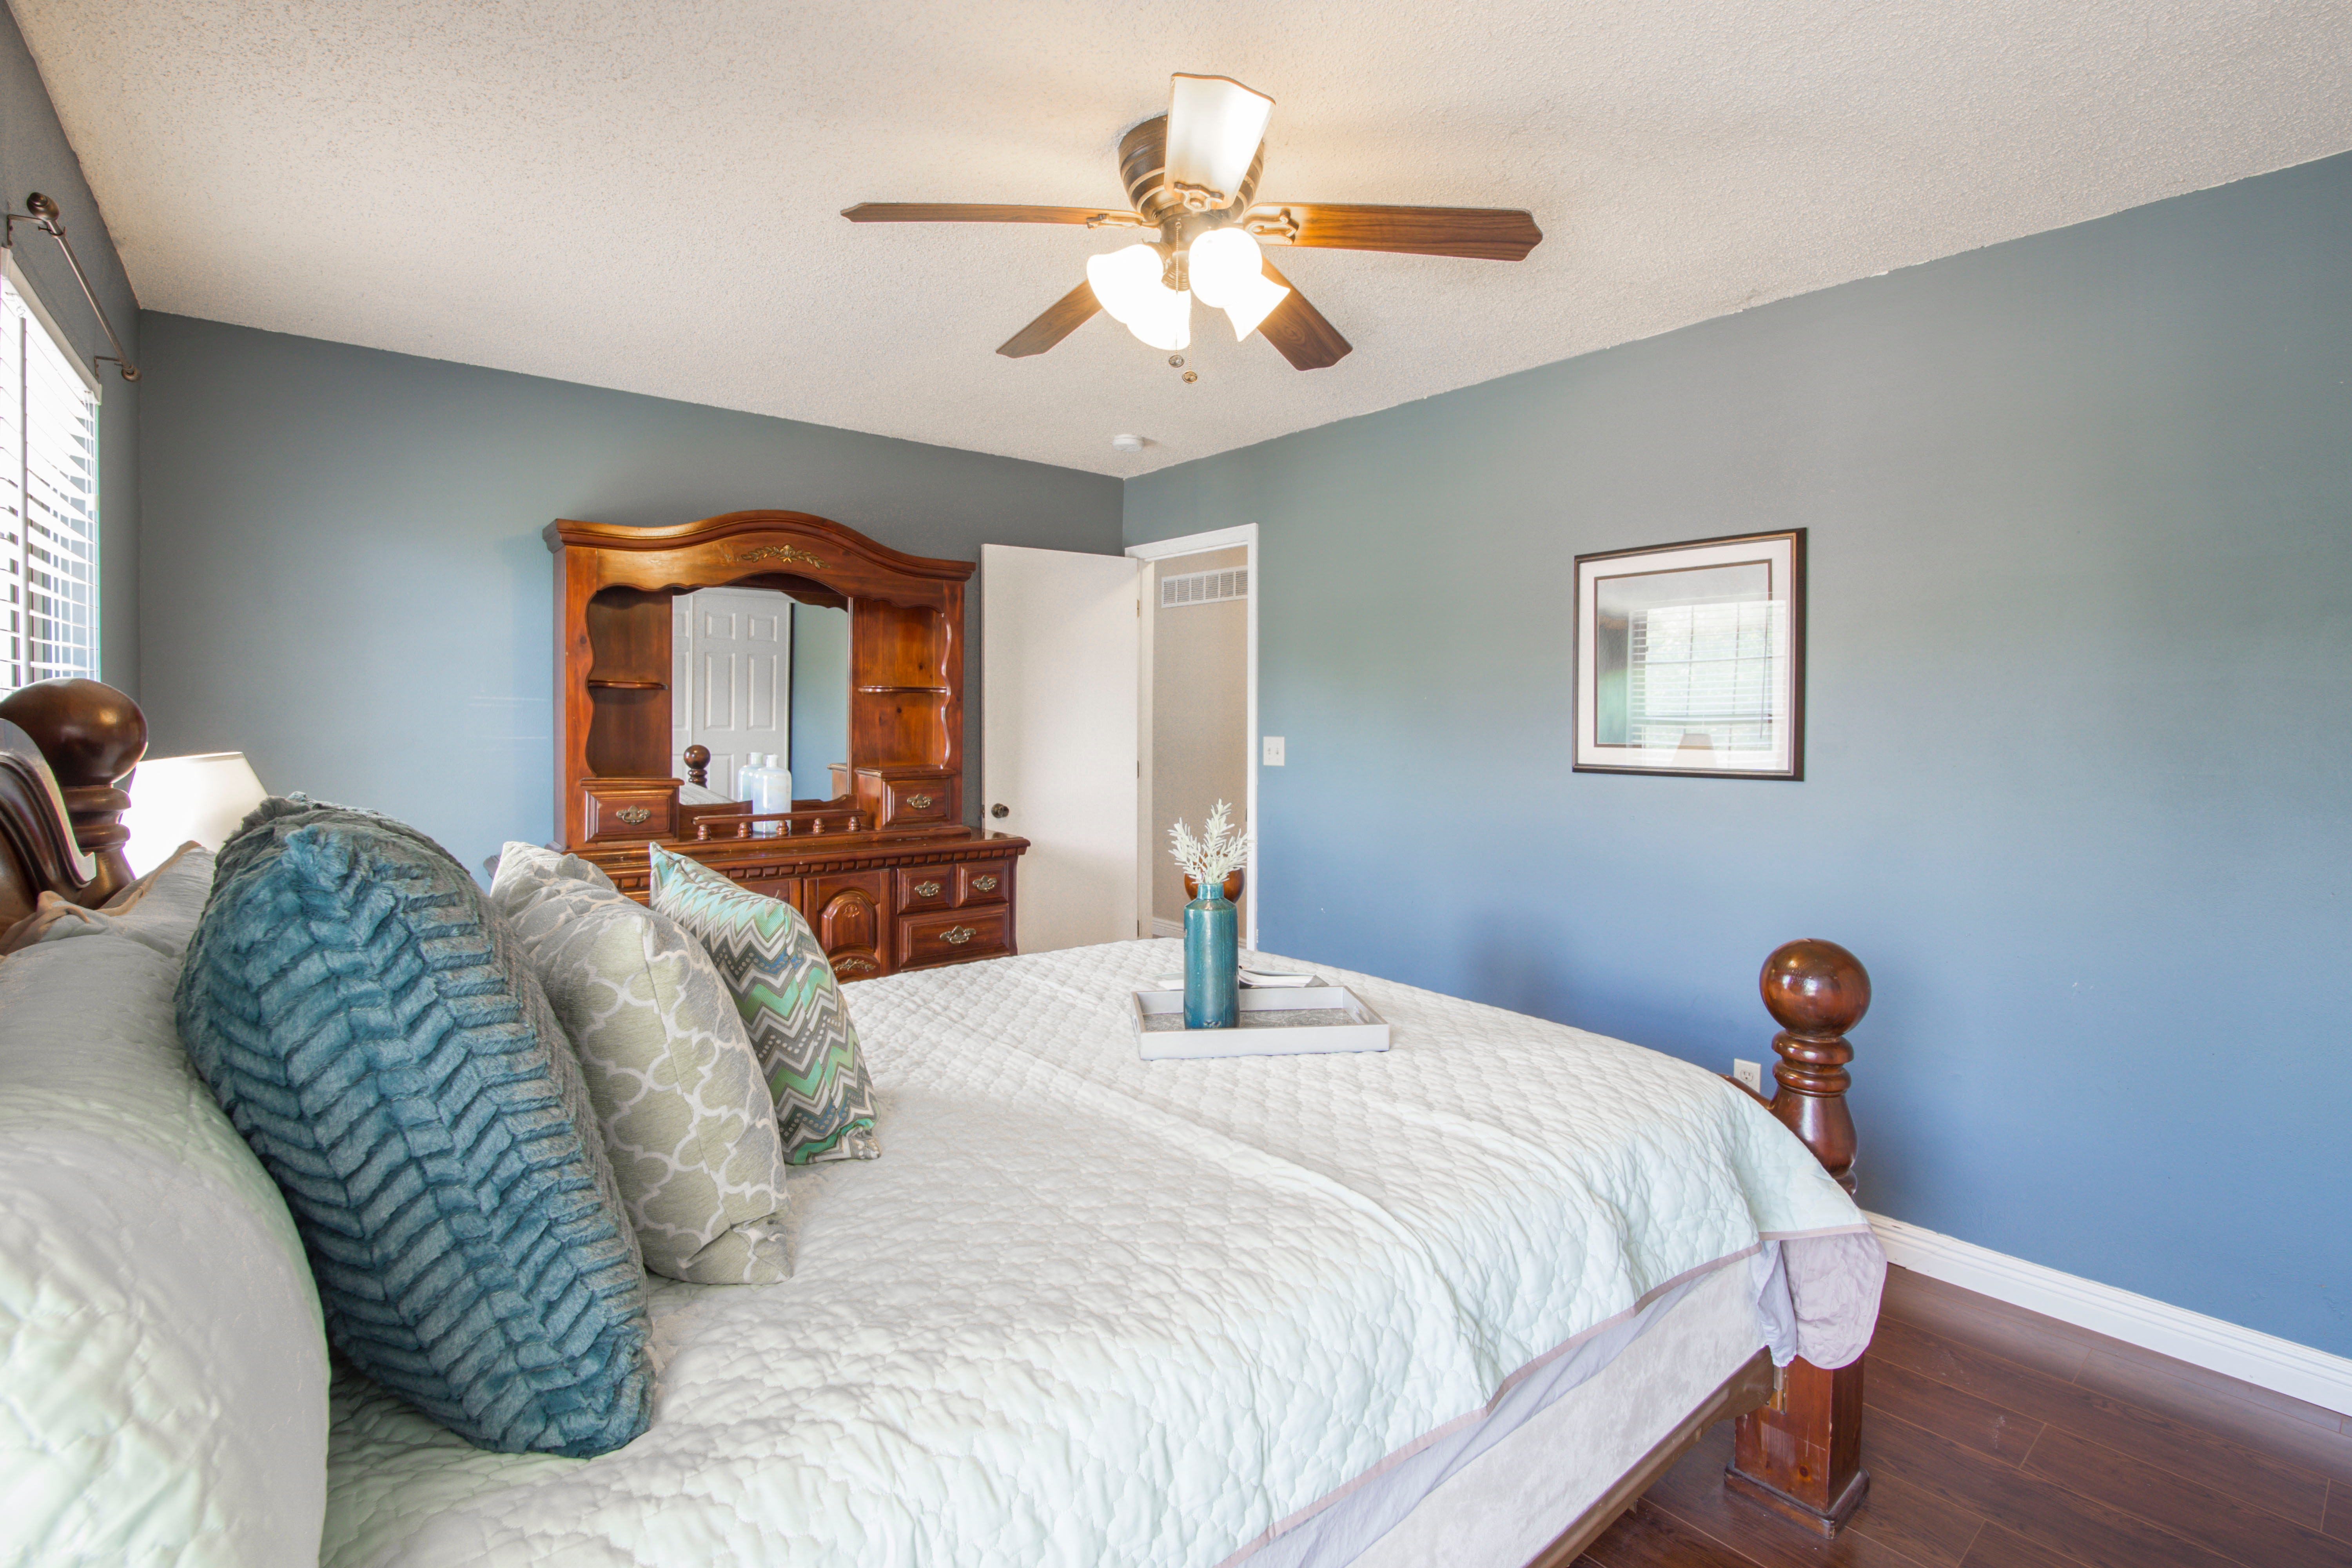 Ceiling Fan - Weather Proofing your Home